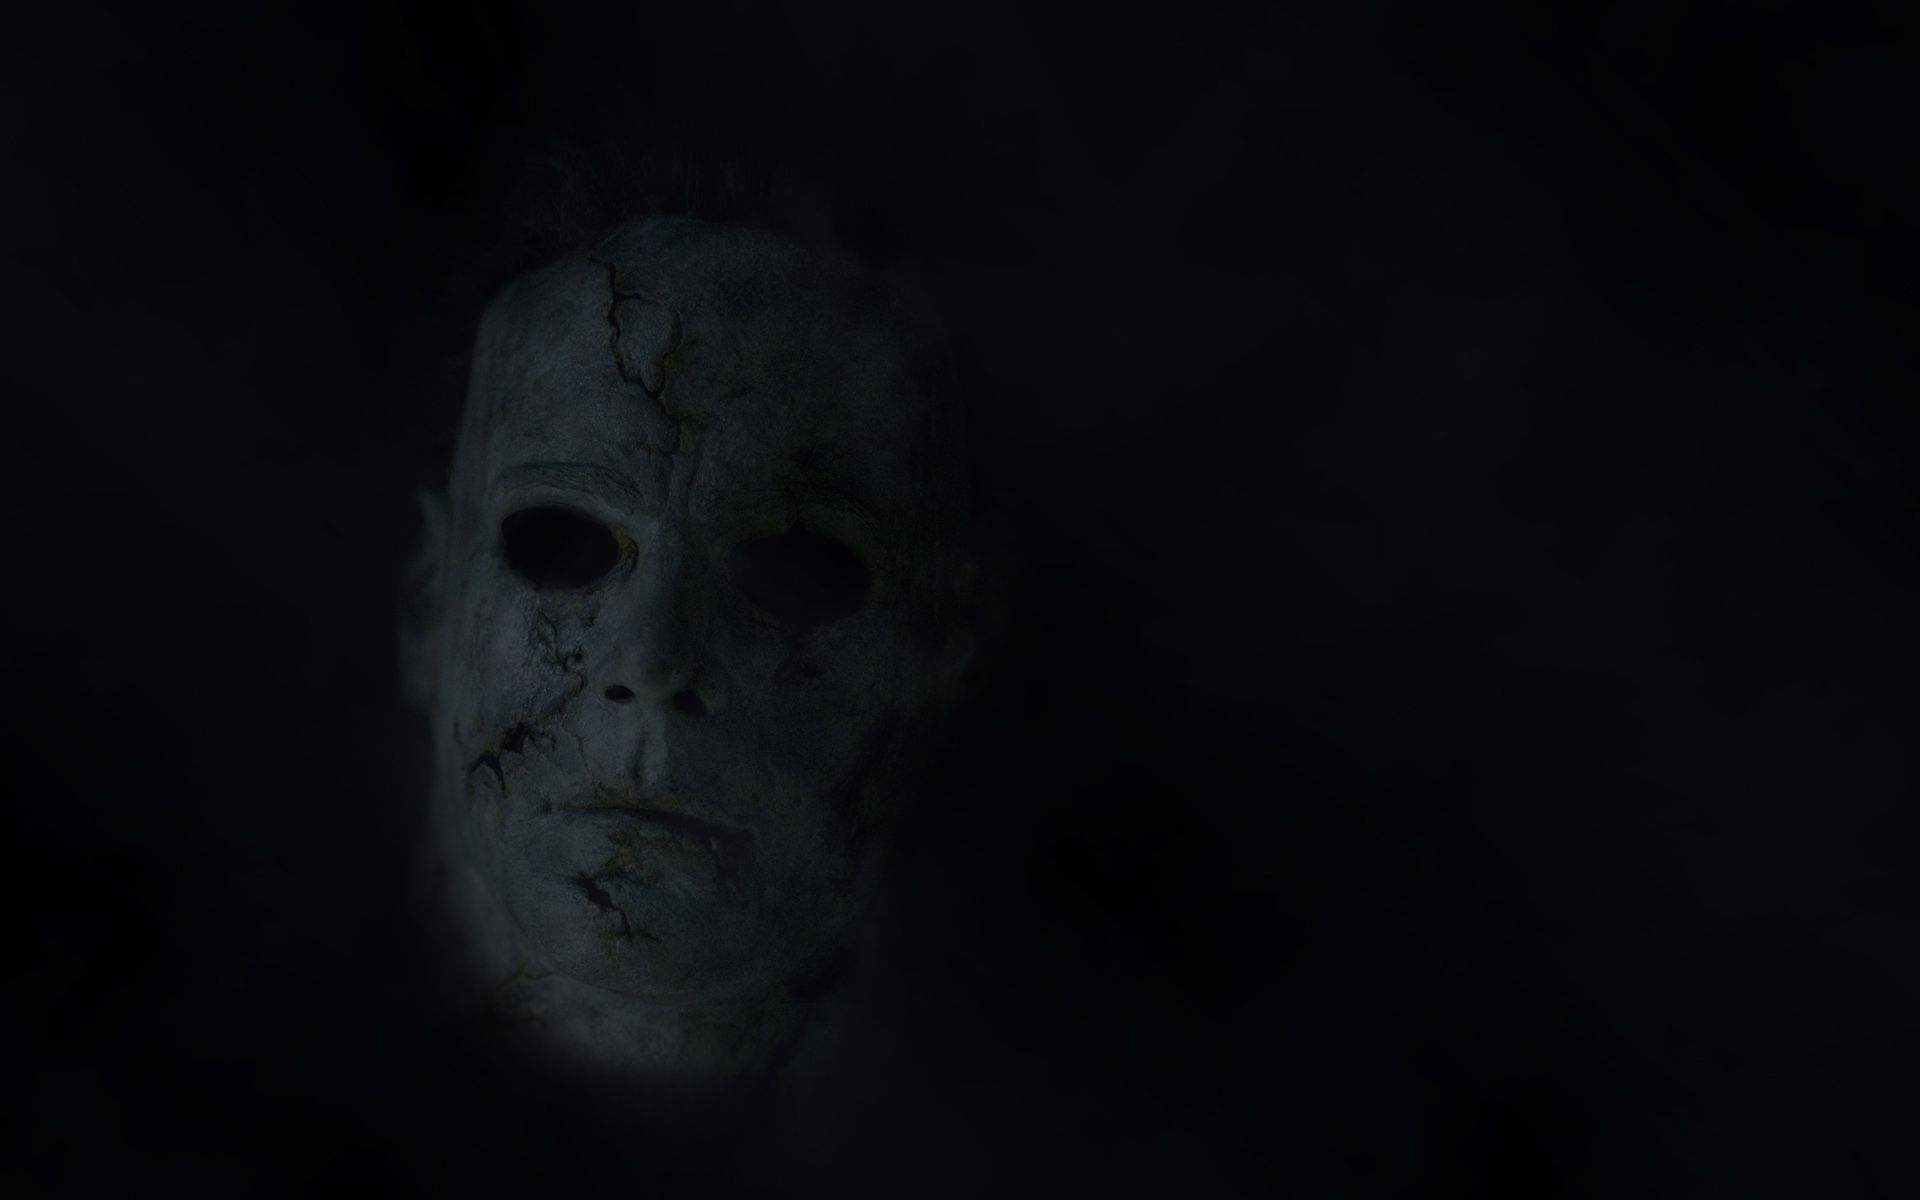 Scary Face Wallpaper